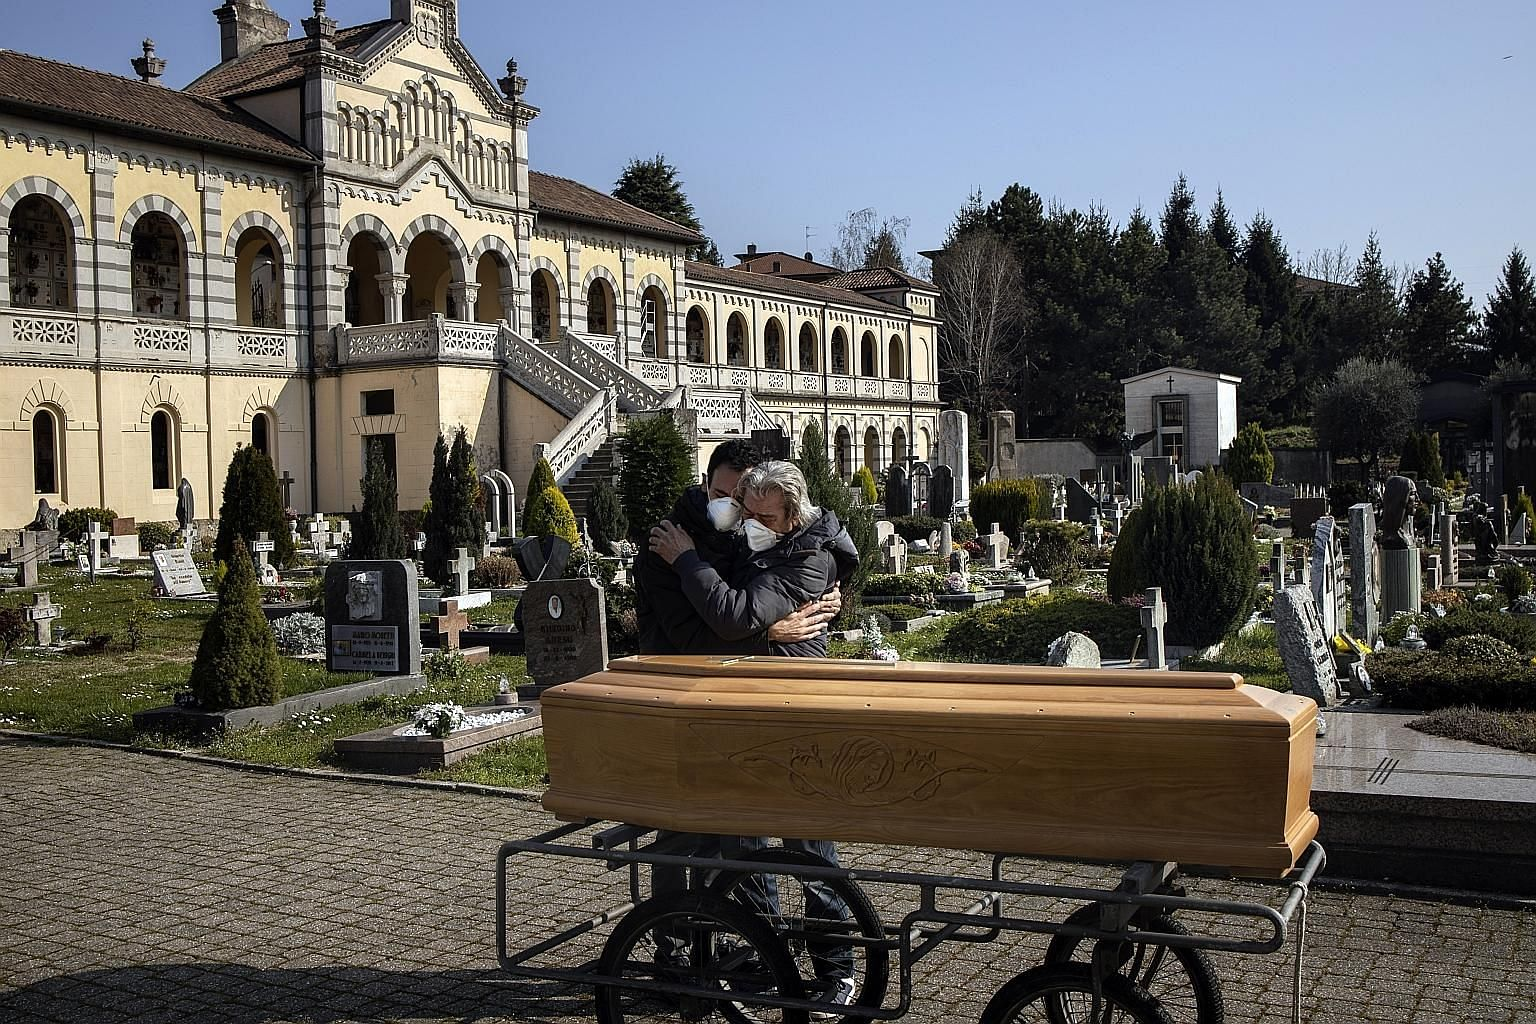 A woman's family mourning her death in Italy this month. She had pre-existing health problems and died at home without being tested for the coronavirus.